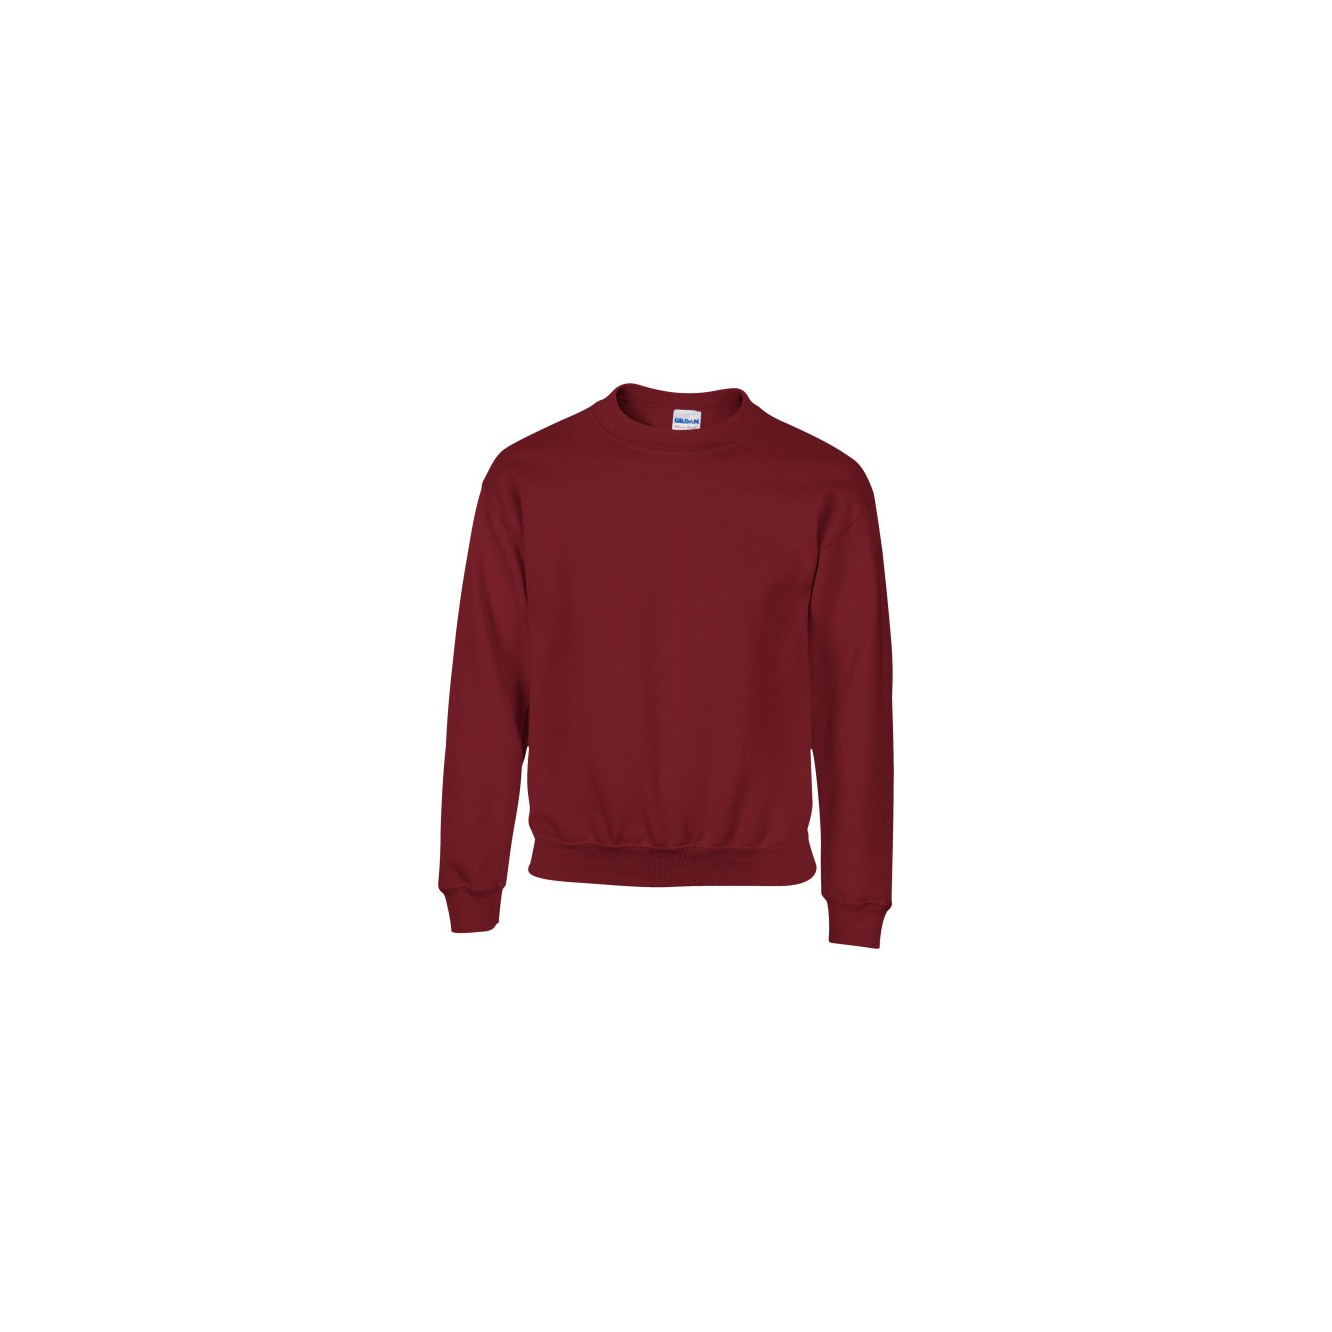 Sweater crewneck heavyblend for kids